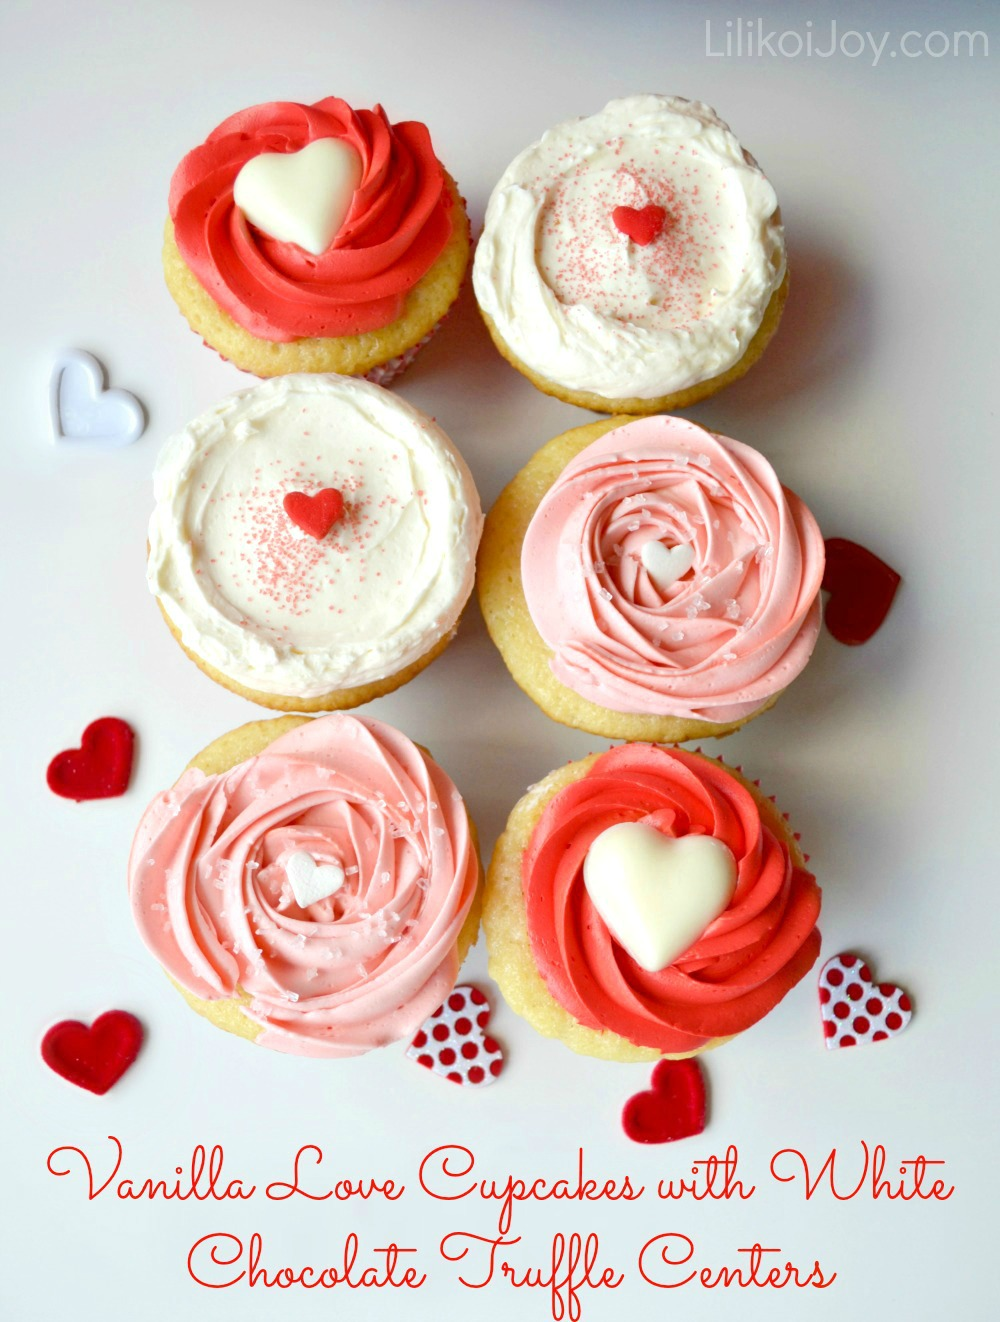 Have The Cake Vanilla Love Cupcakes With White Chocolate Truffle